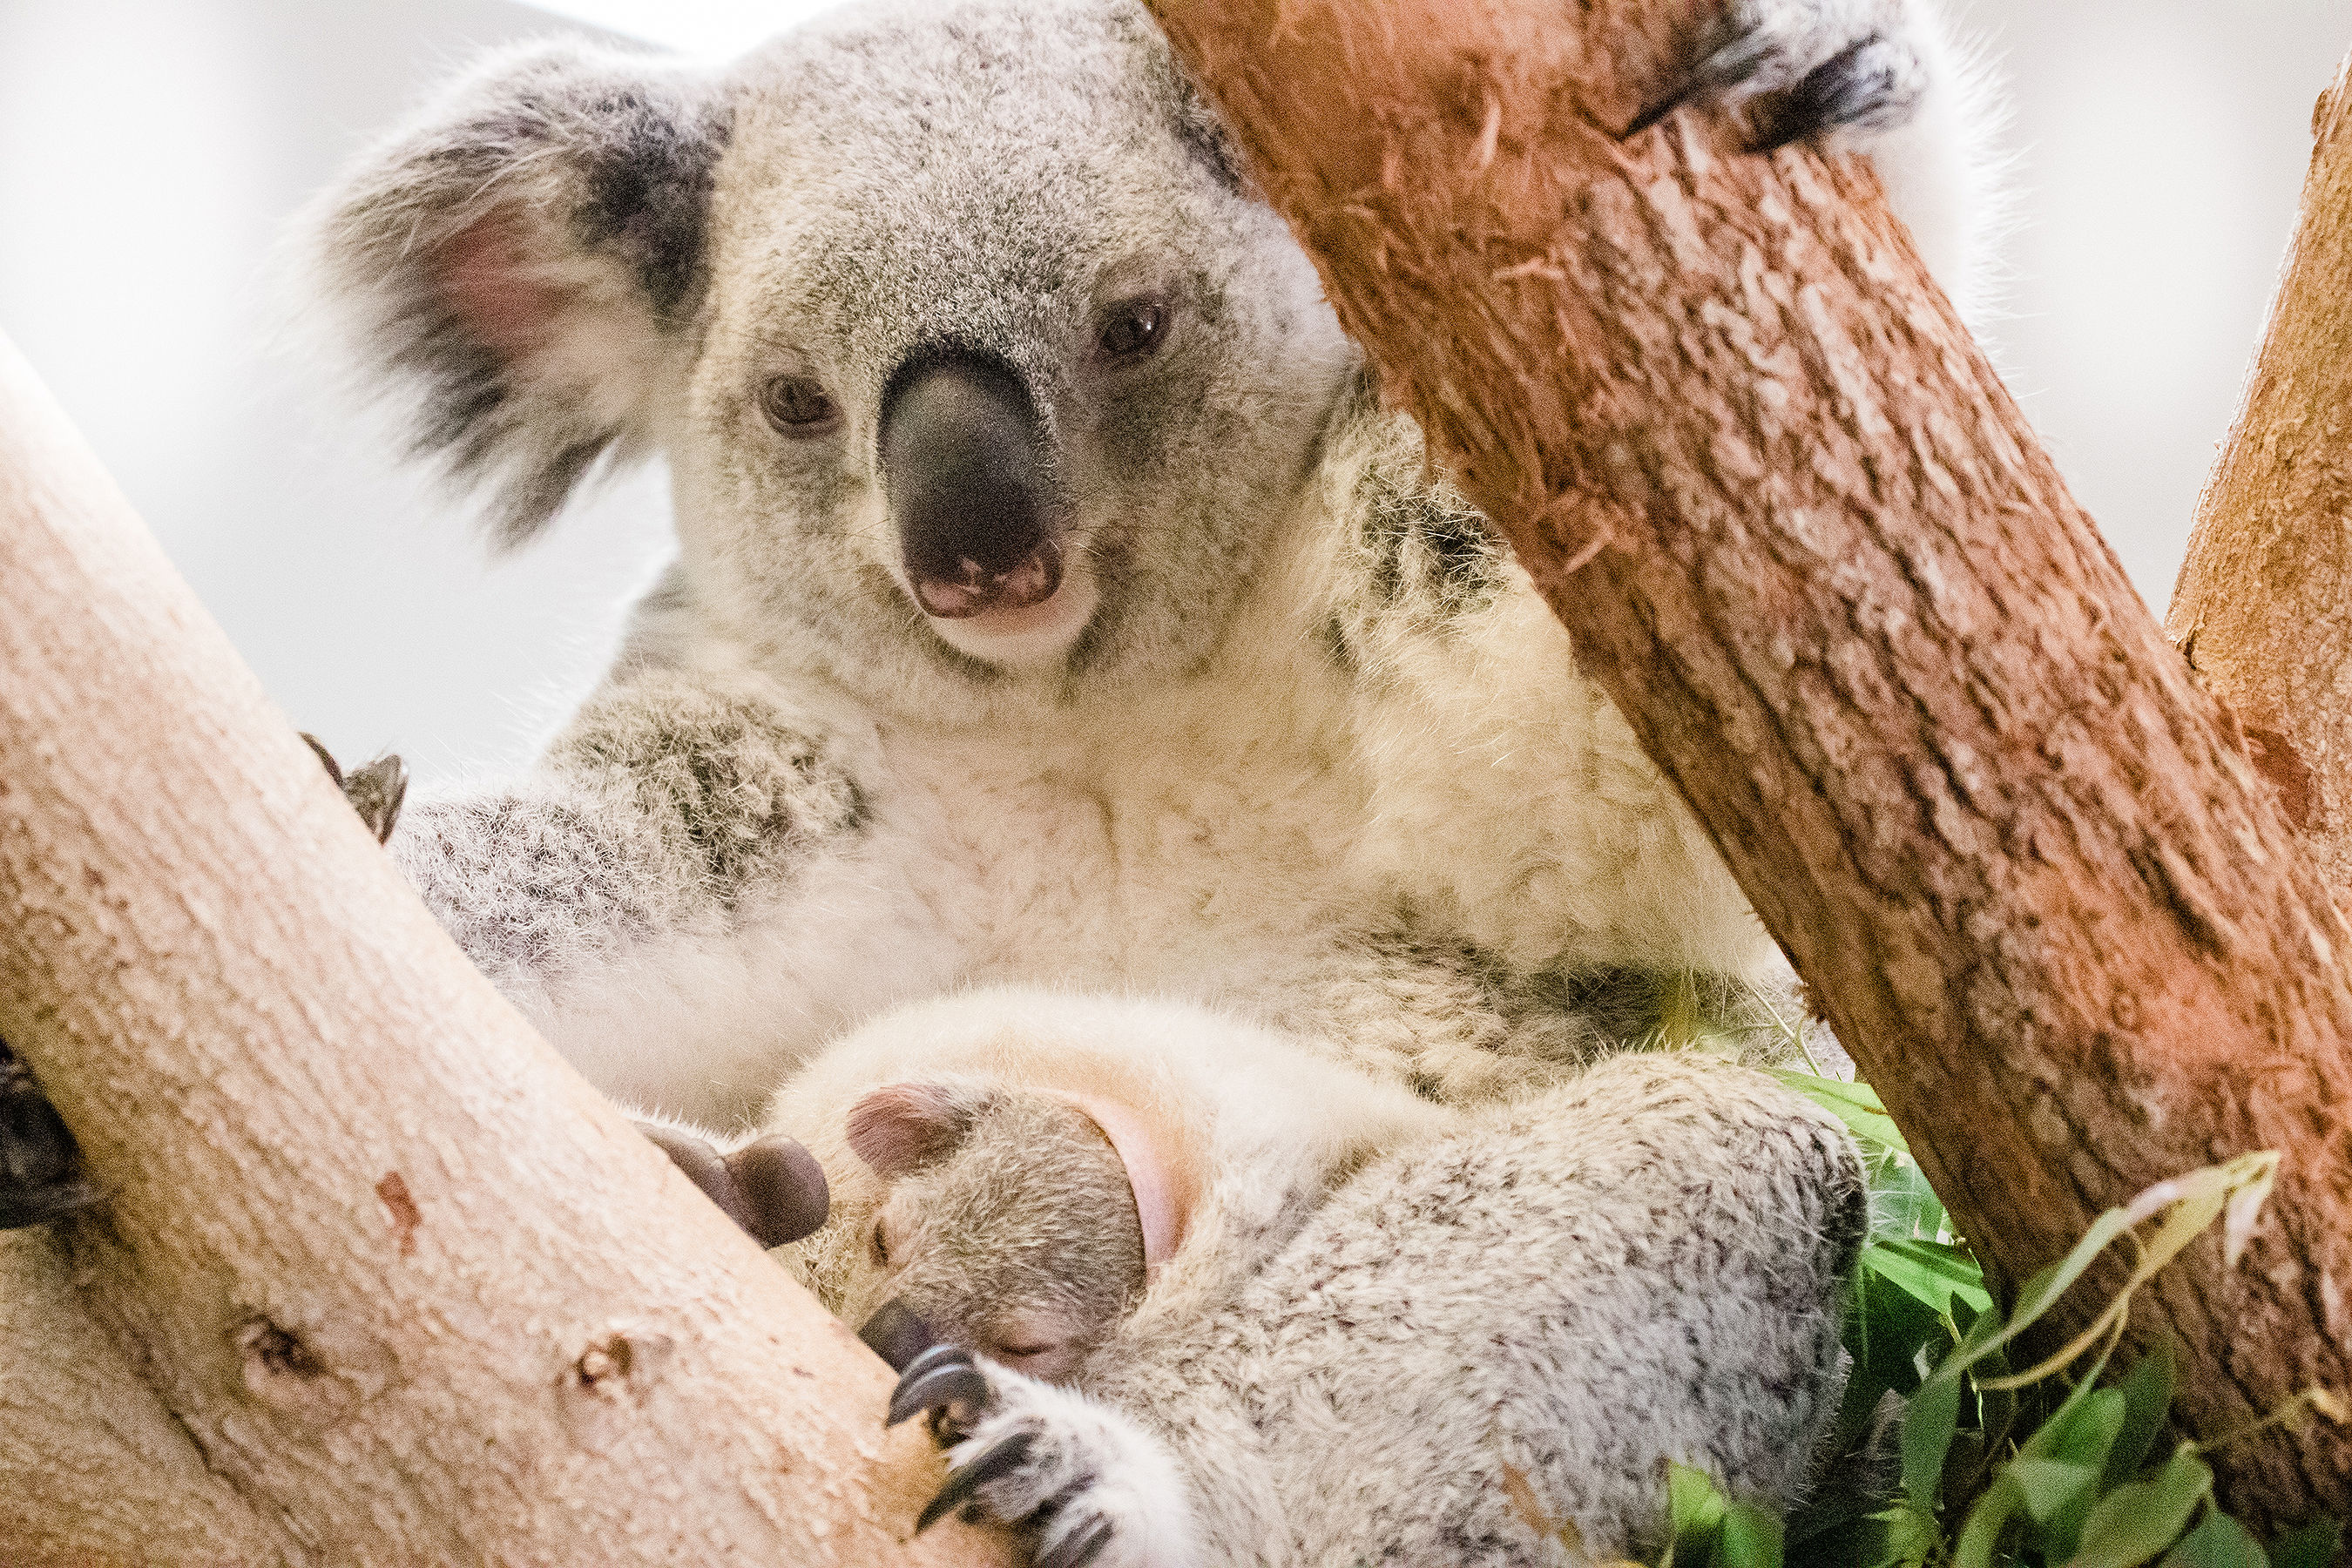 Florida Zoo Koala Joey Emerges from Mother's Pouch for the First Time Looking Picture Perfect